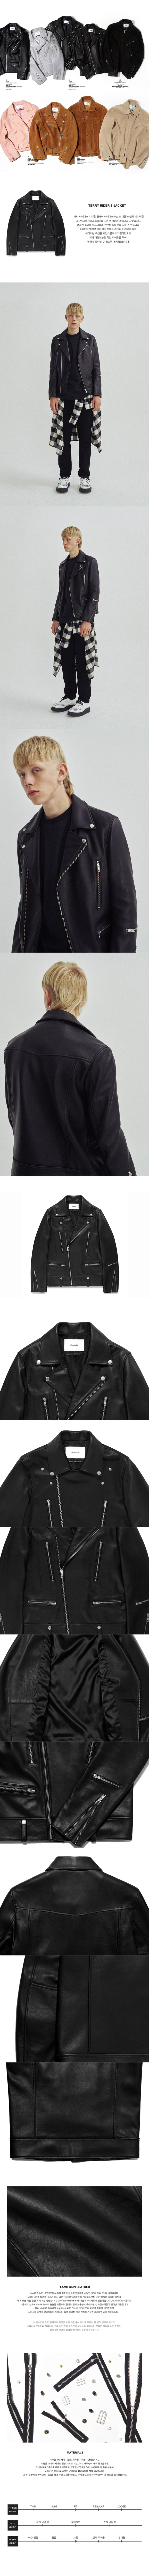 비바스튜디오(VIVASTUDIO) TERRY RIDERS JACKET GA [BLACK]